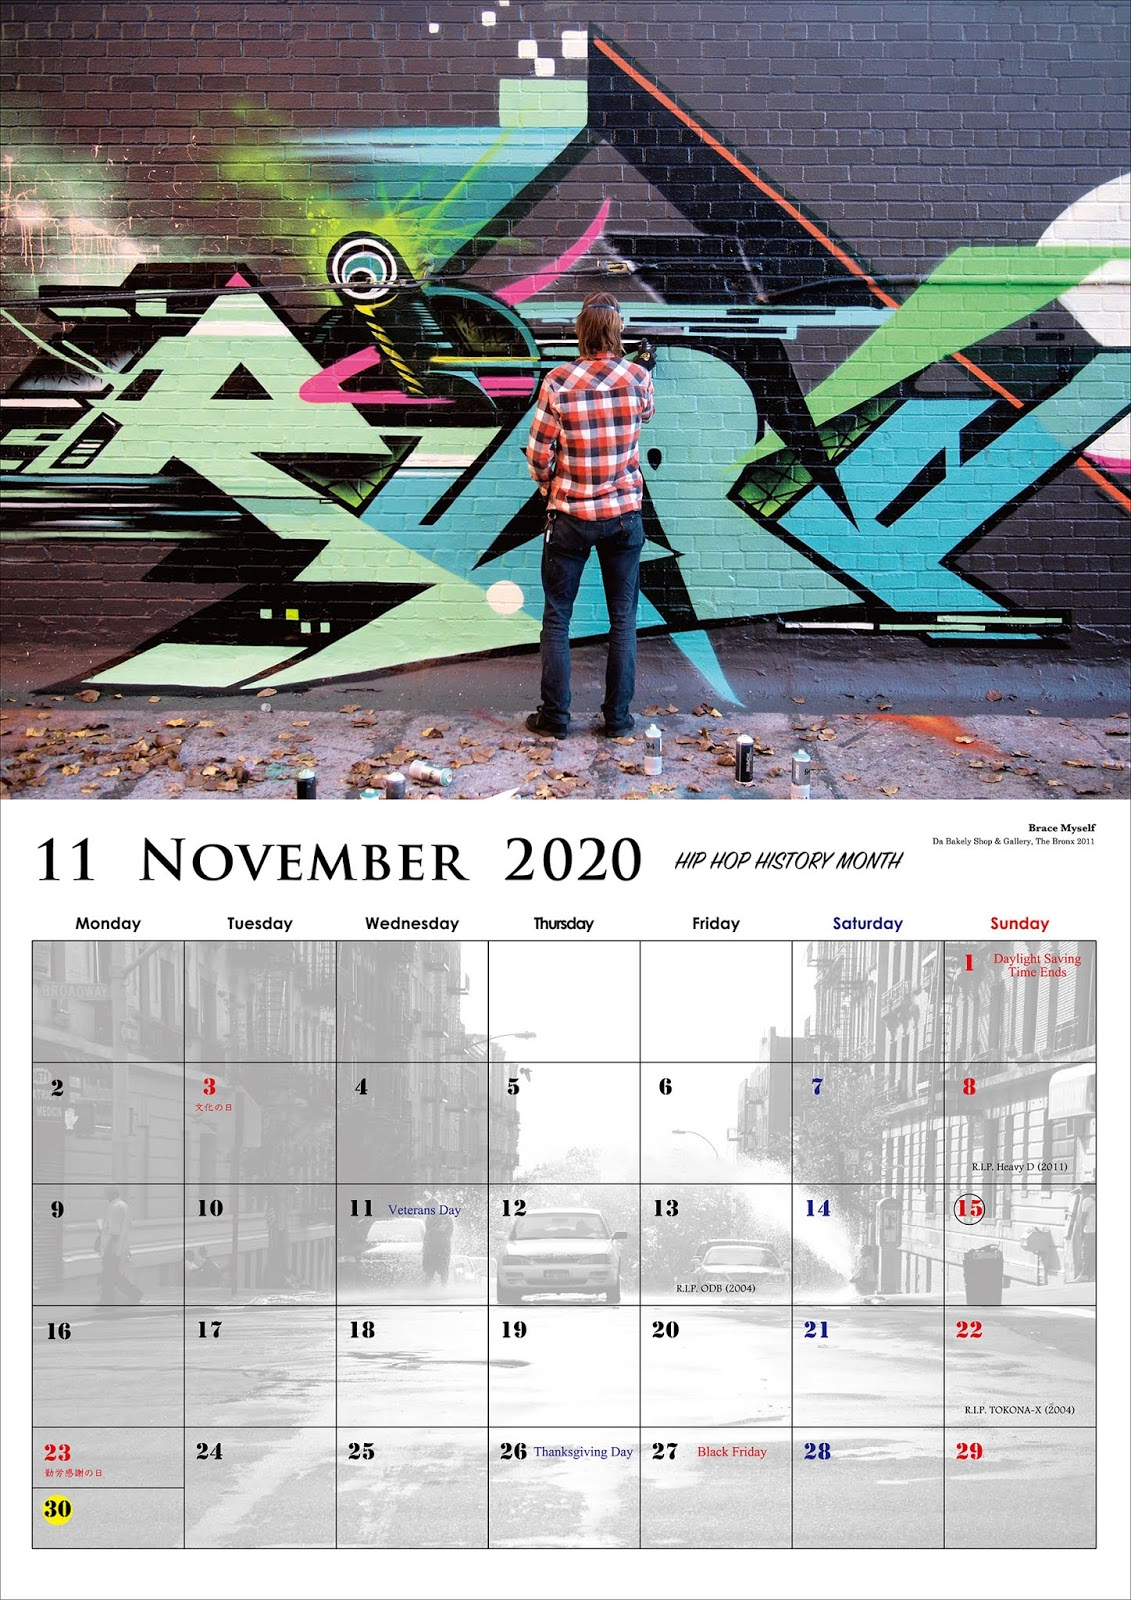 212.MAG 2020 CALENDAR 「THE WORLD GOES ROUND」